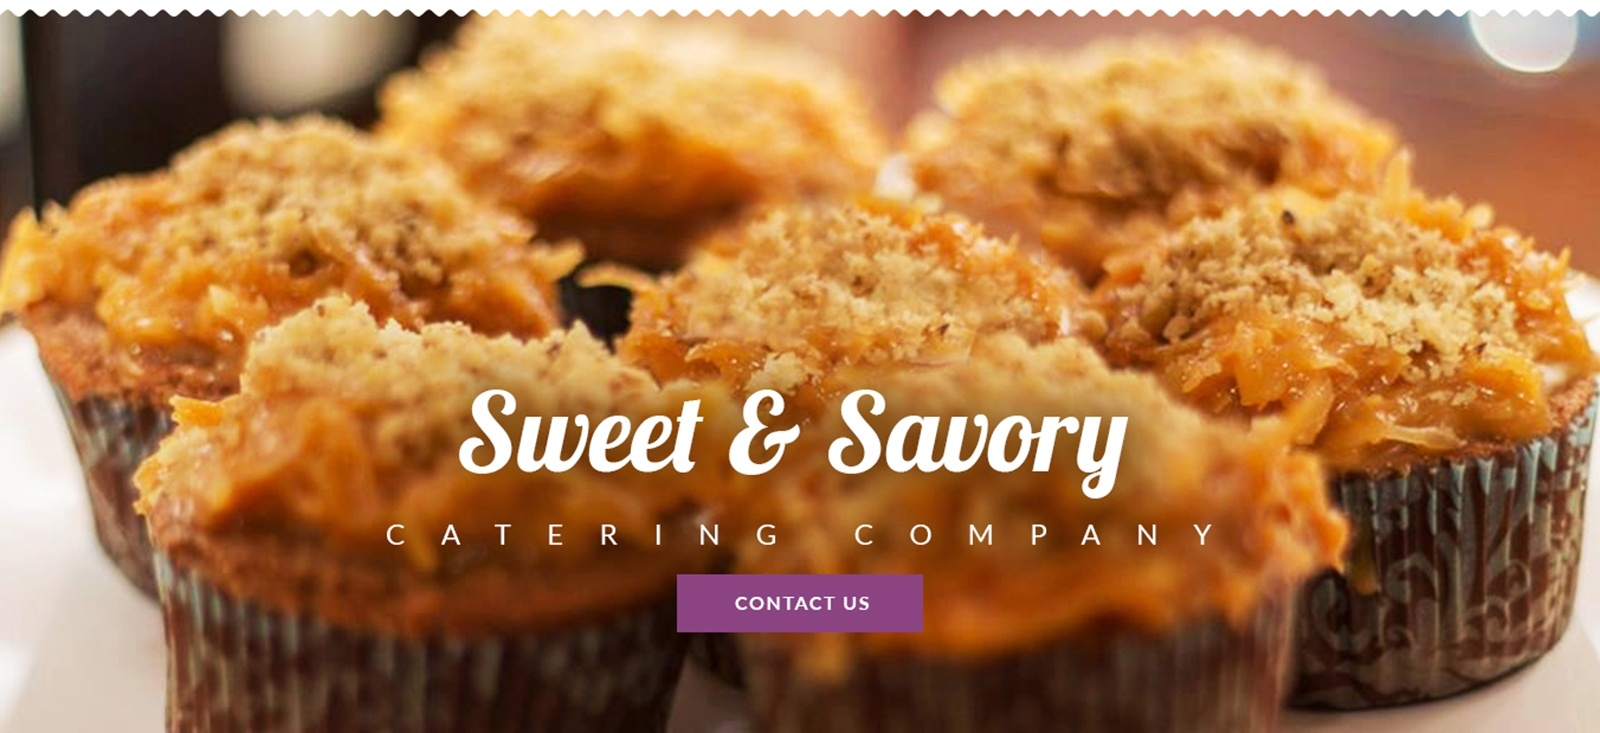 Sweet Catering Company in Chicago, IL